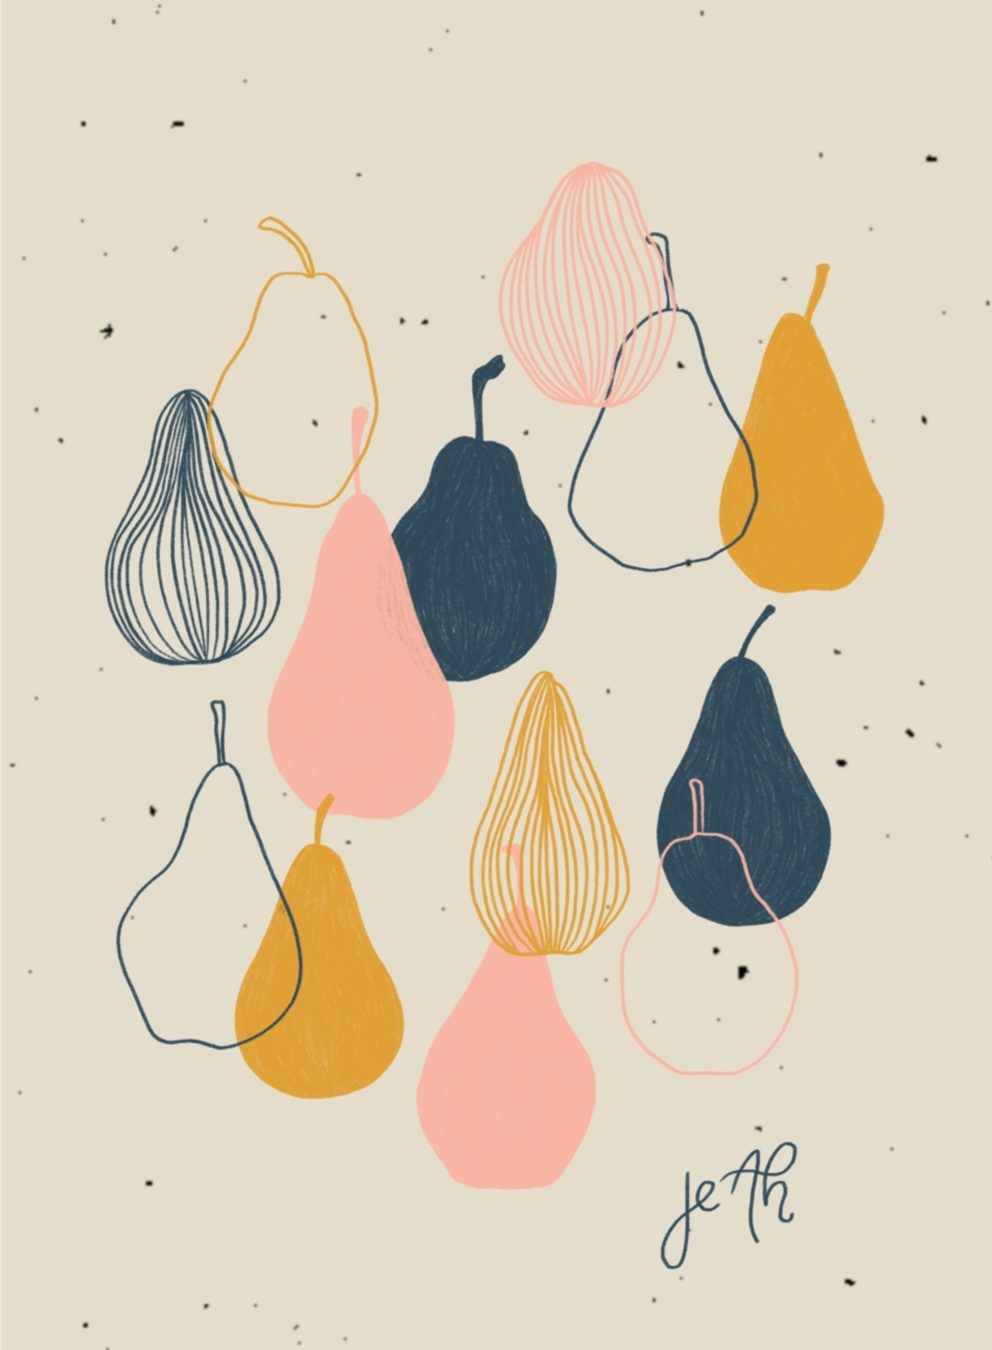 Digital illustration of pears